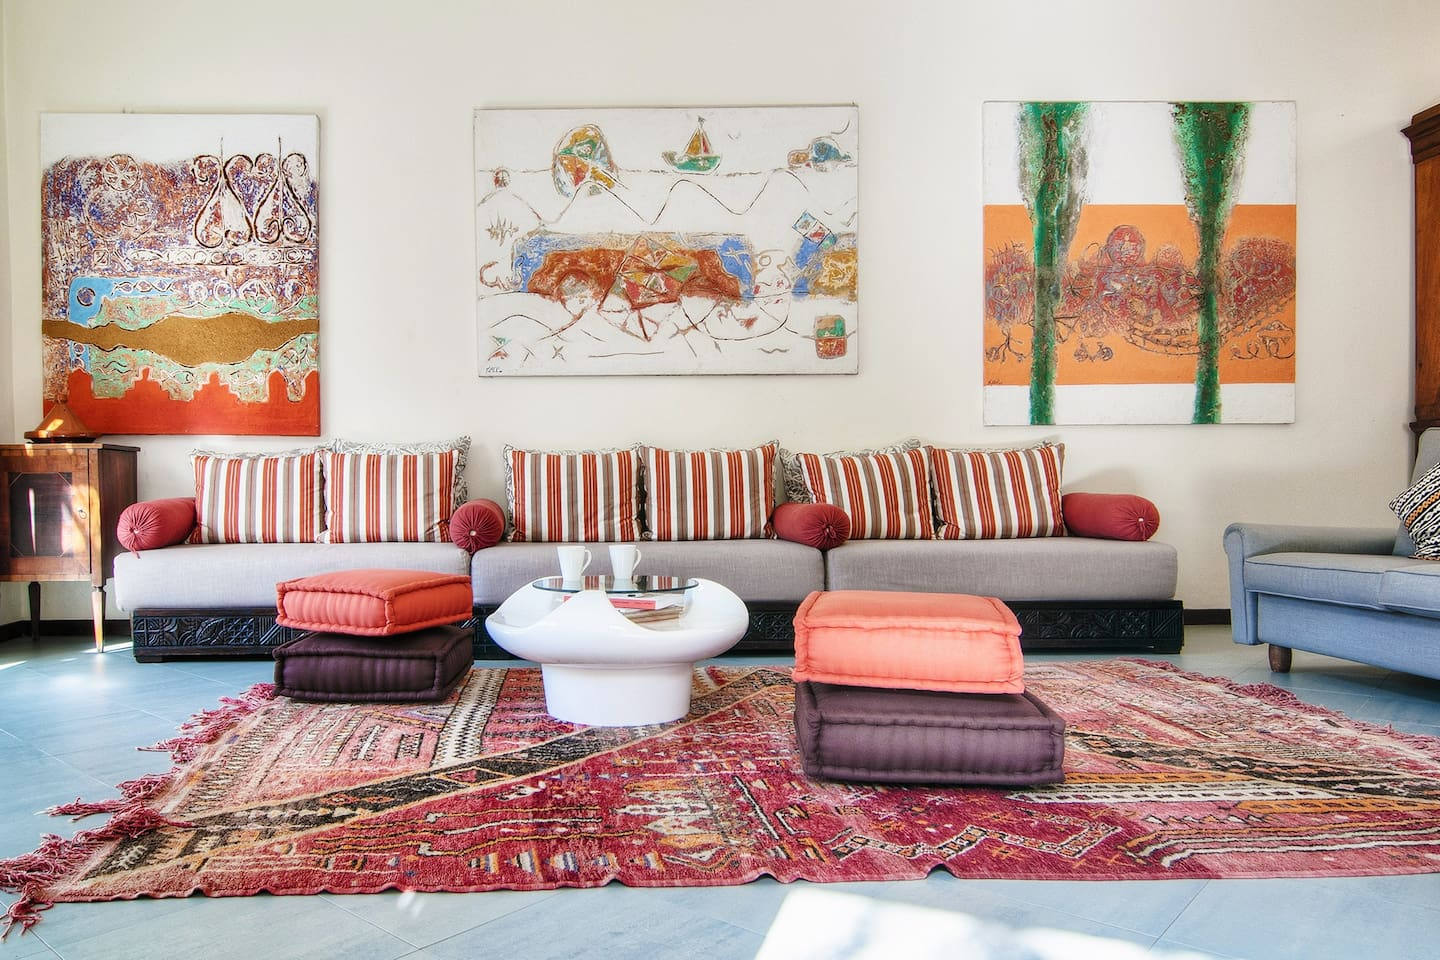 Top 20 Bed and Breakfasts Casablanca: Inns and B&Bs - Airbnb ...